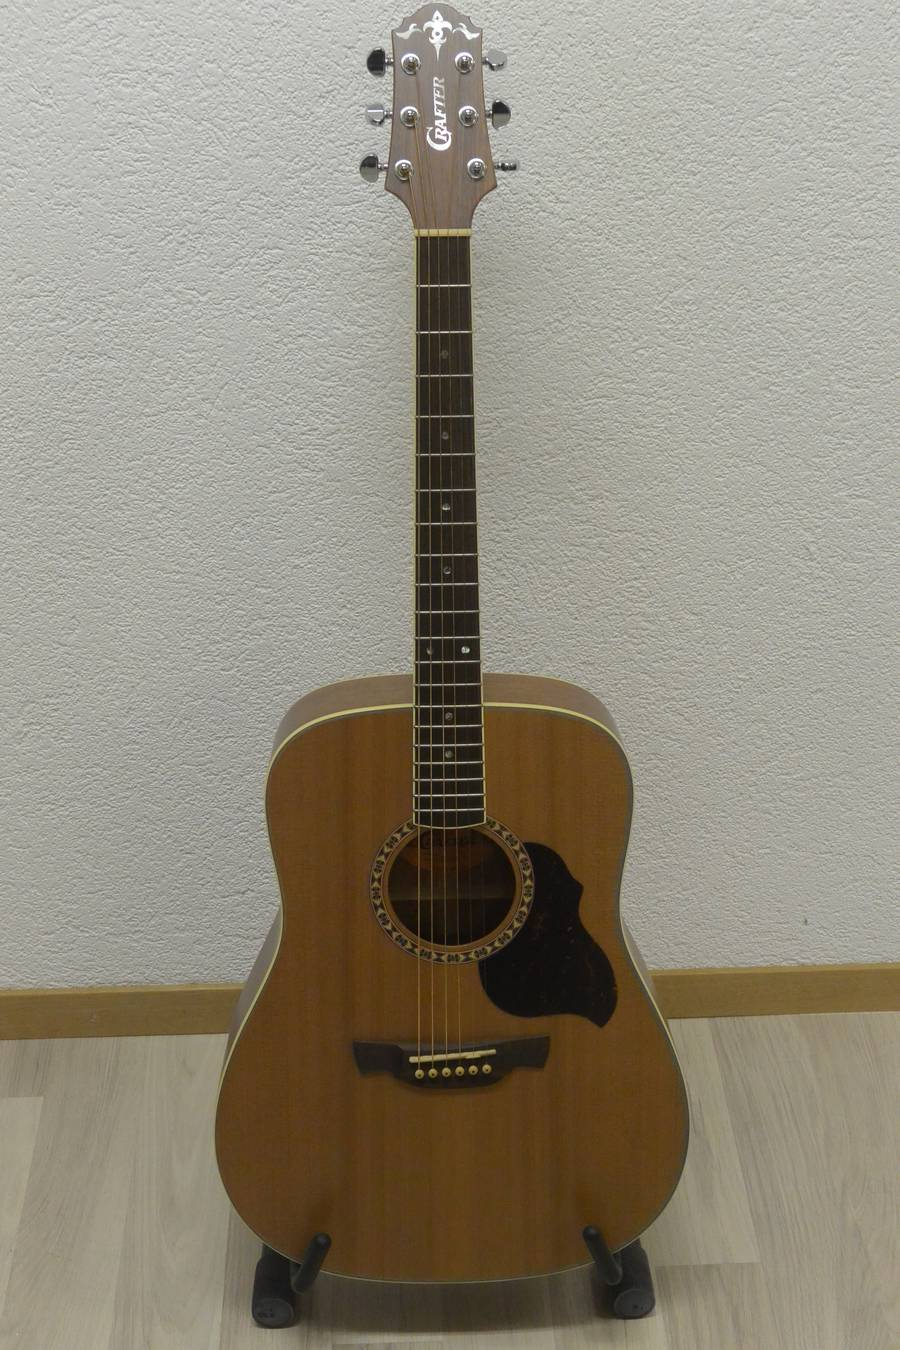 guitare acoustique crafter D7N frs 495.00